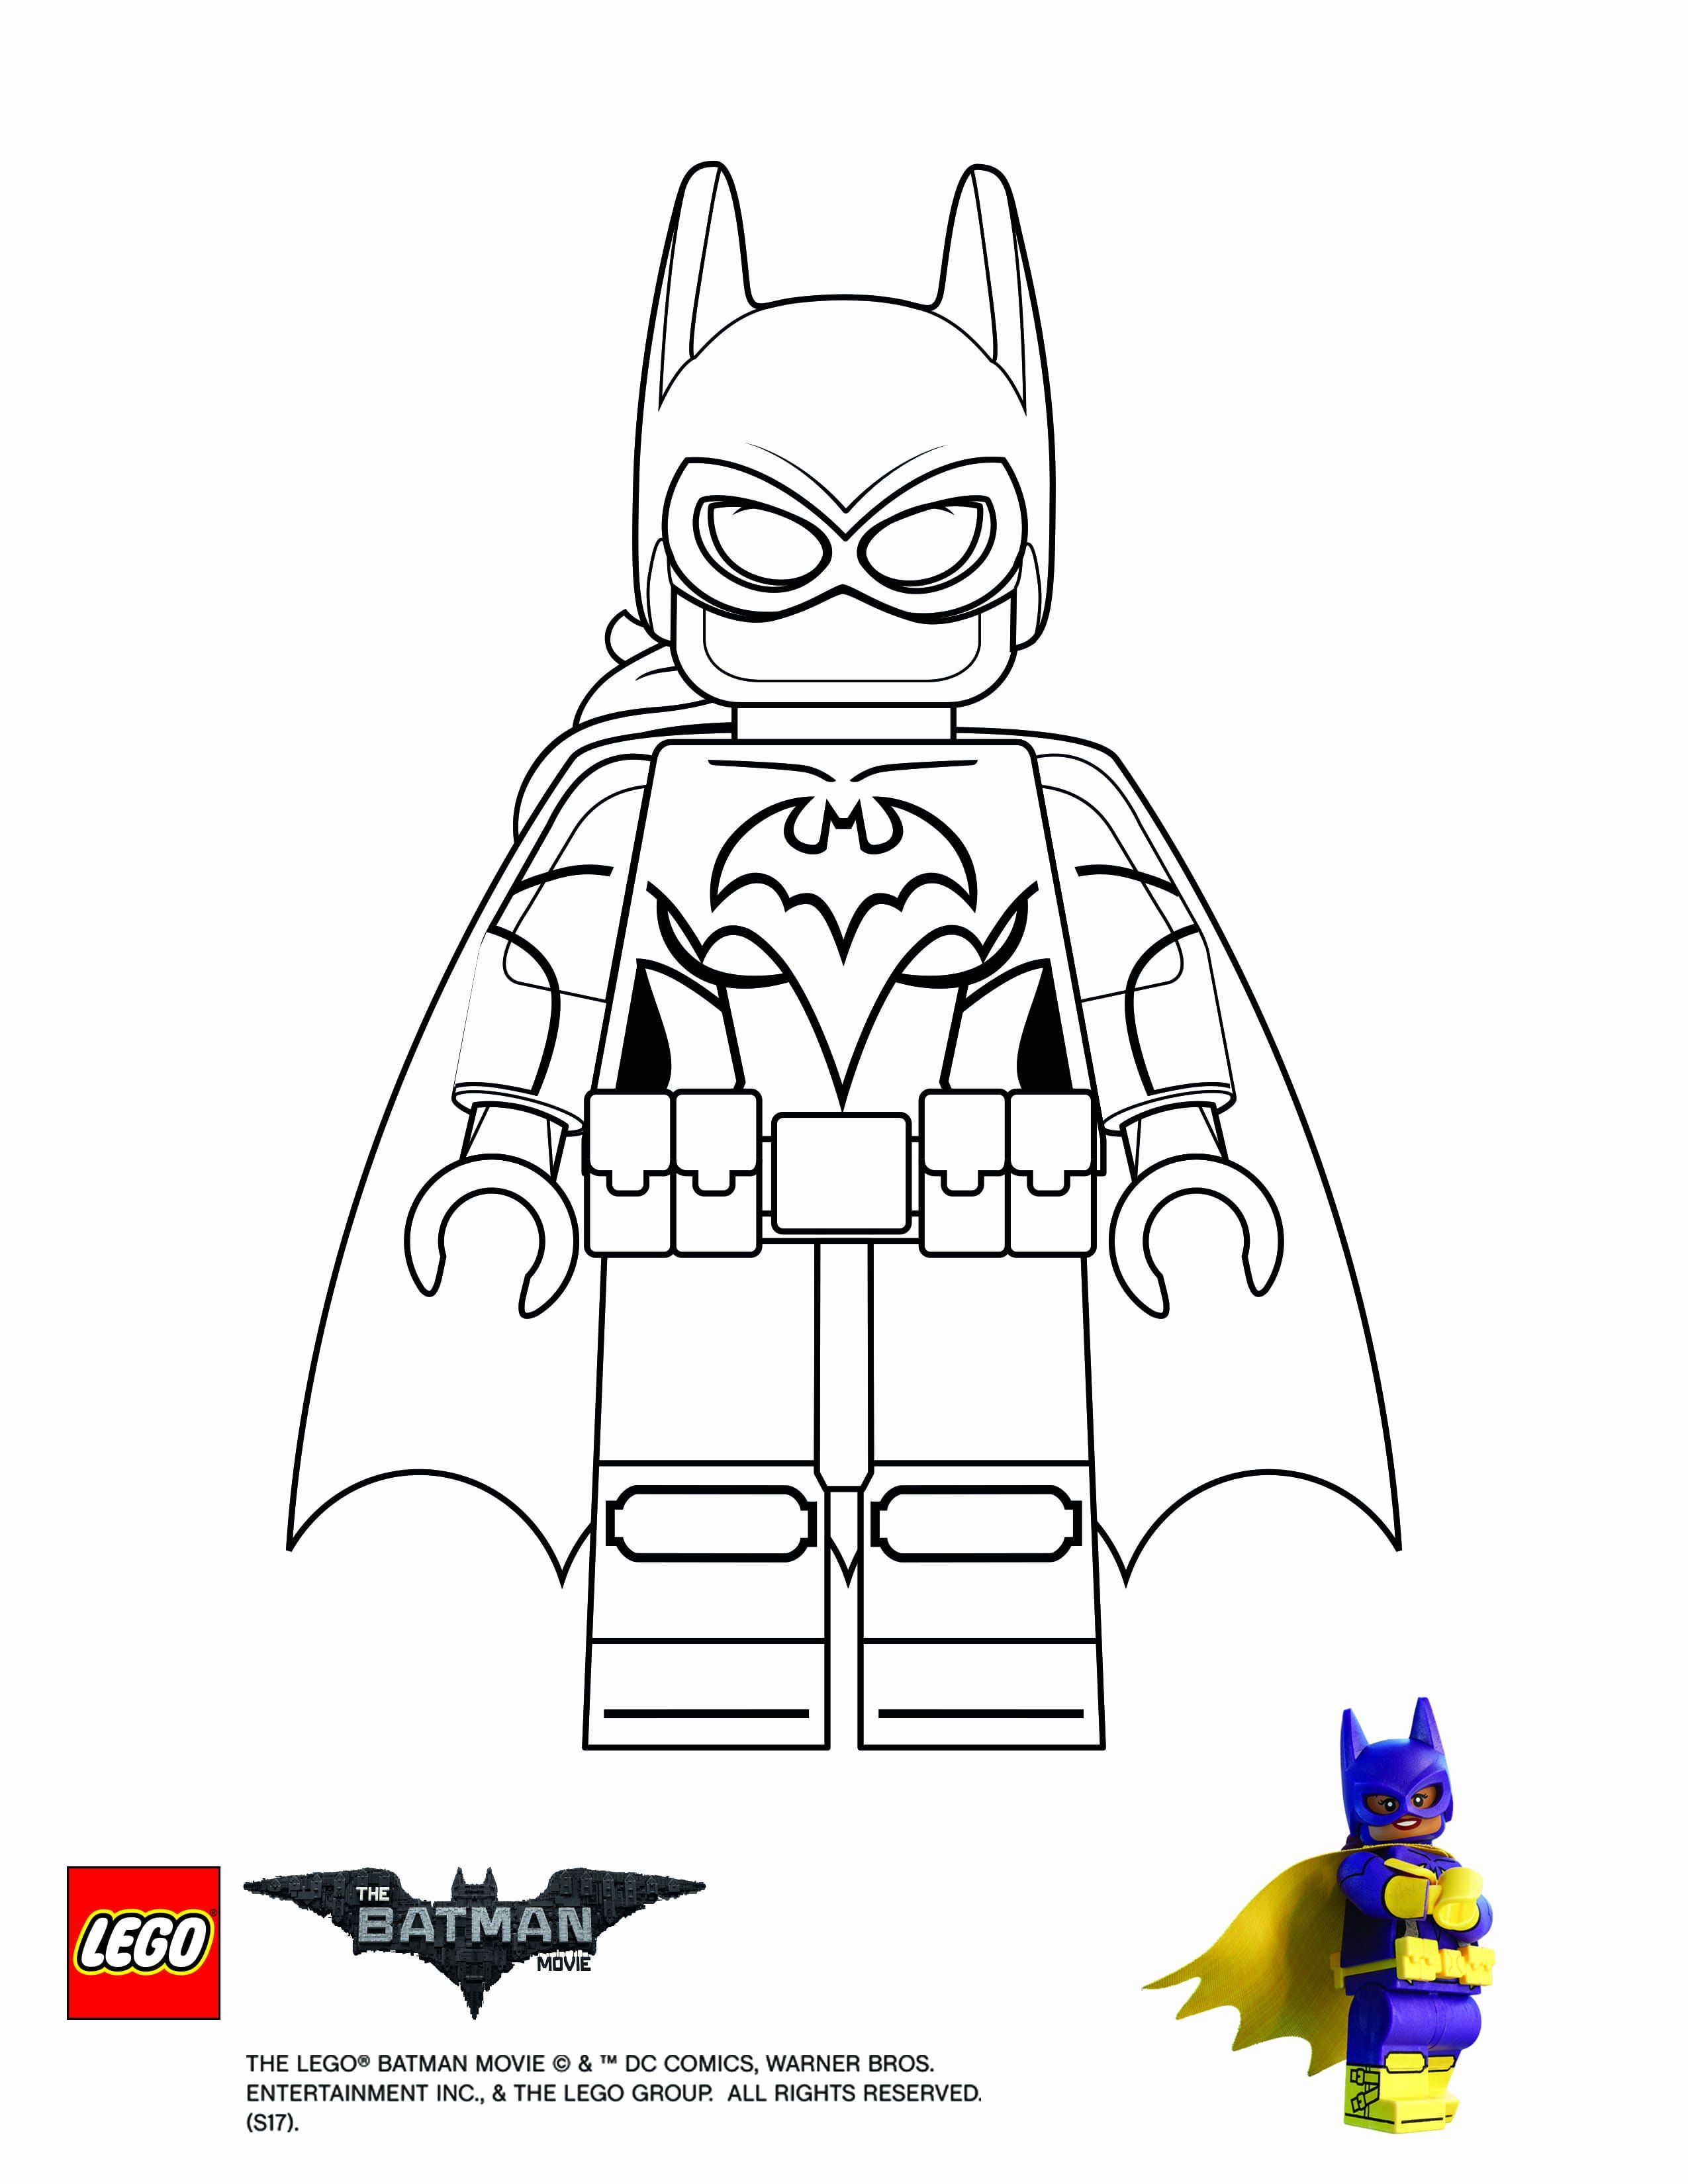 Cartoon Characters Coloring Sheets Fresh Lego Superhero Coloring Pages Best Lego Superman Coloring